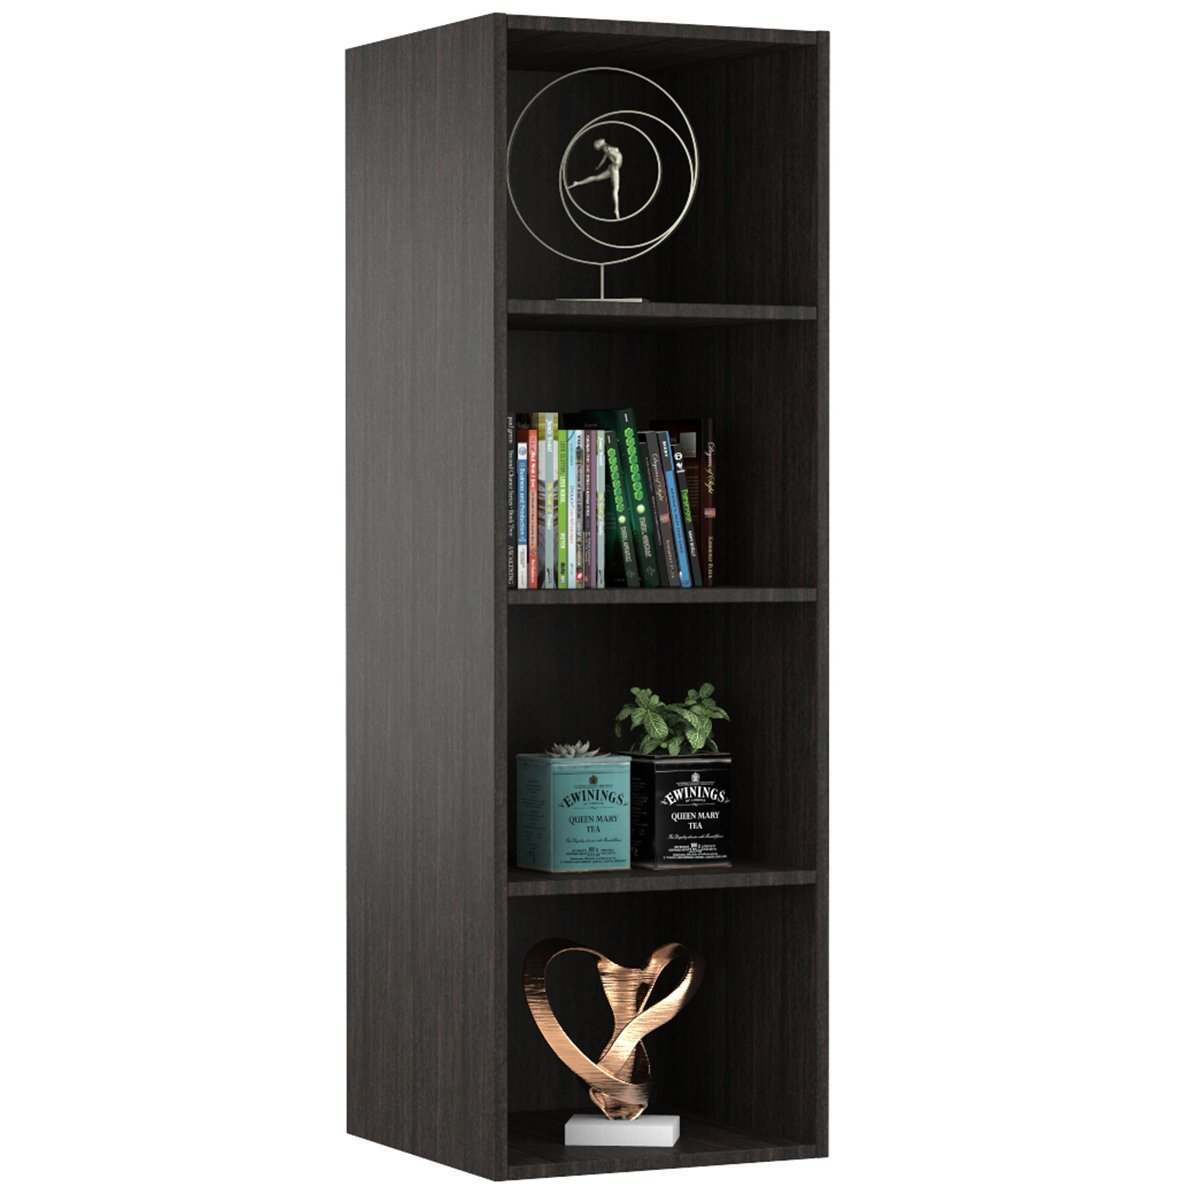 Forzza Bristol 4-Shelf Bookcase